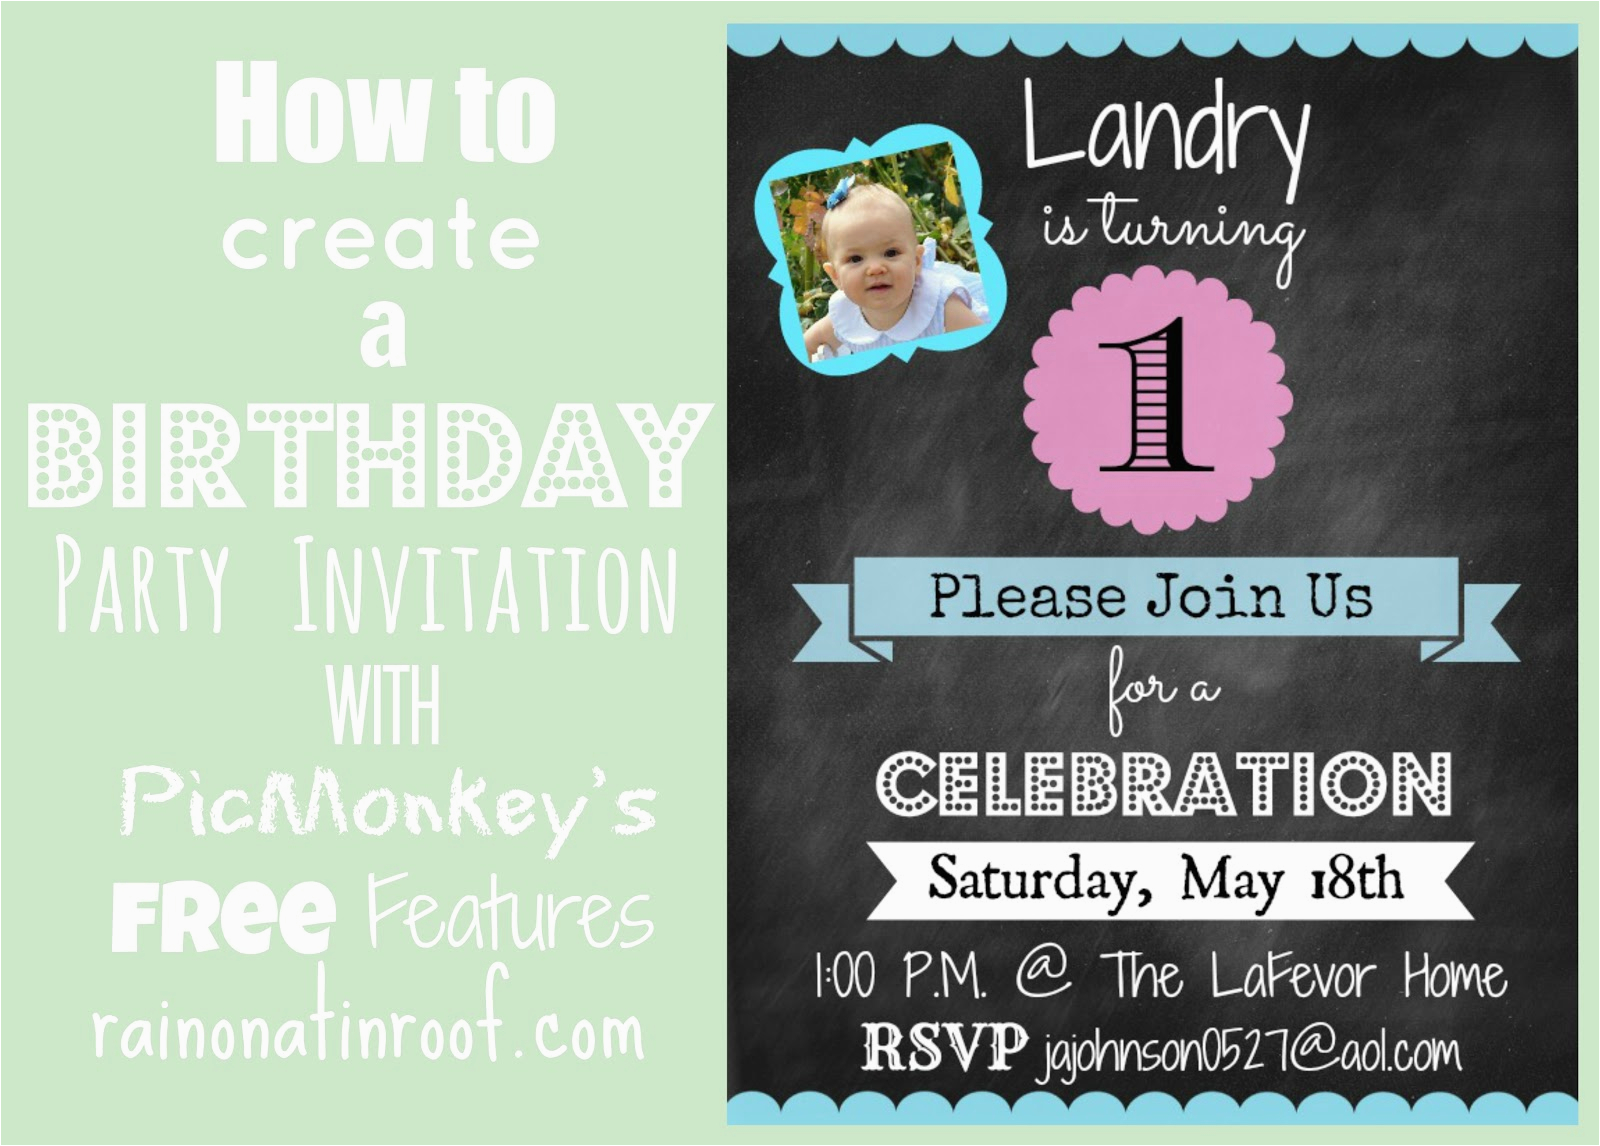 How To Create Birthday Invitations Online Free An Invitation In Picmonkey